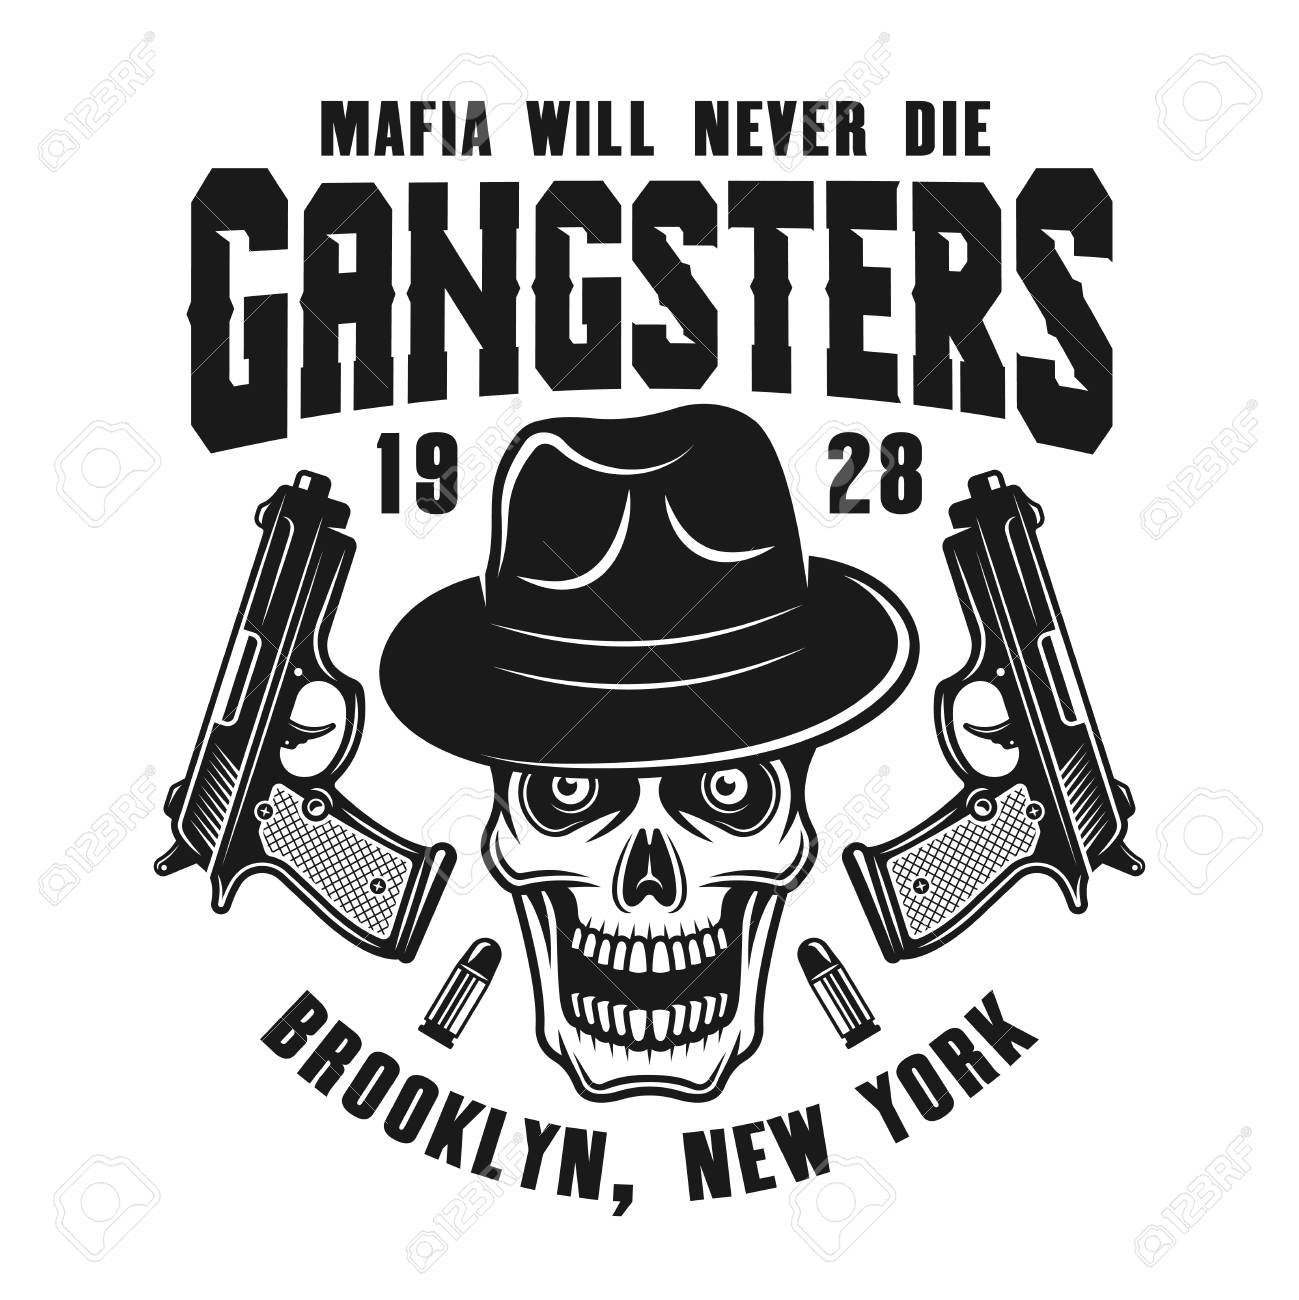 Mafia Emblem Or Logo Concept Design With Gangster Skull In Fedora Hat And Two Guns Isolated